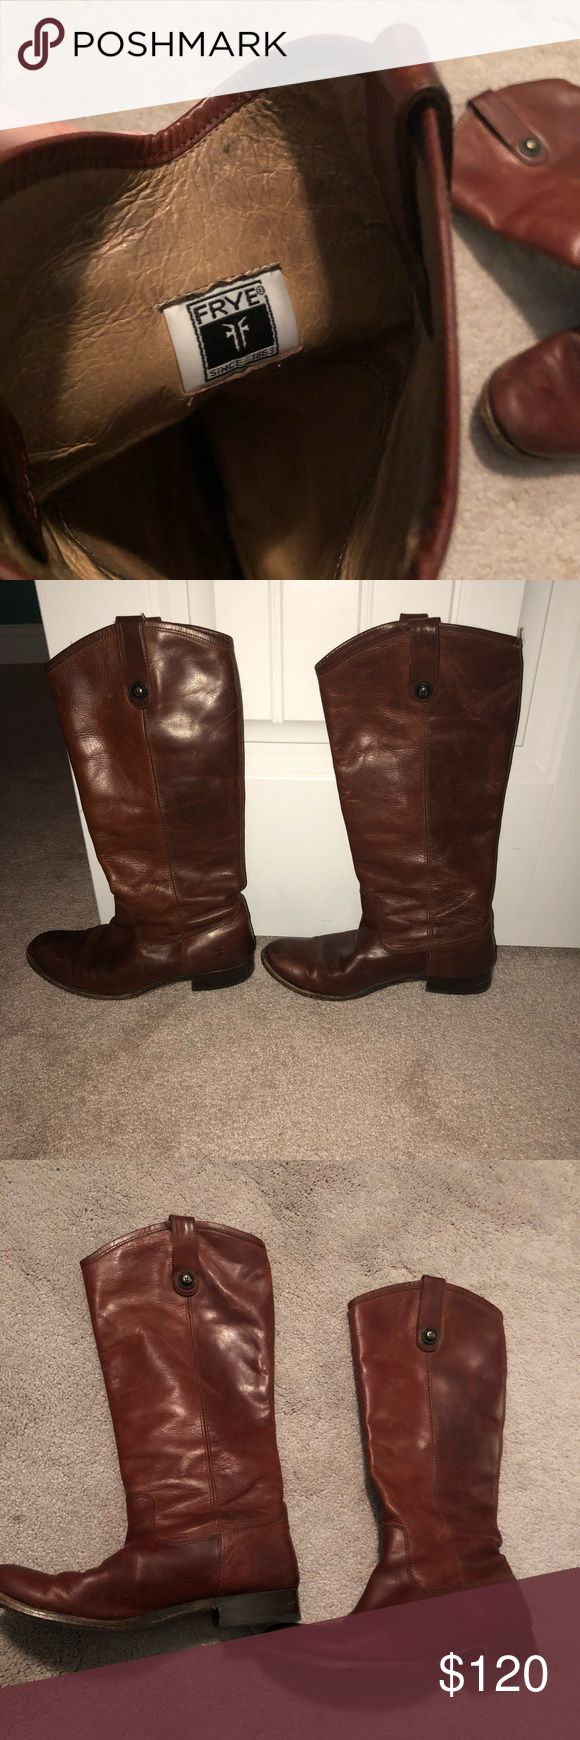 Frye Melissa Boots GUC Frye Melissa Boots. Definitely some wear, but still holding up in good condition. Frye Shoes Winter & Rain Boots